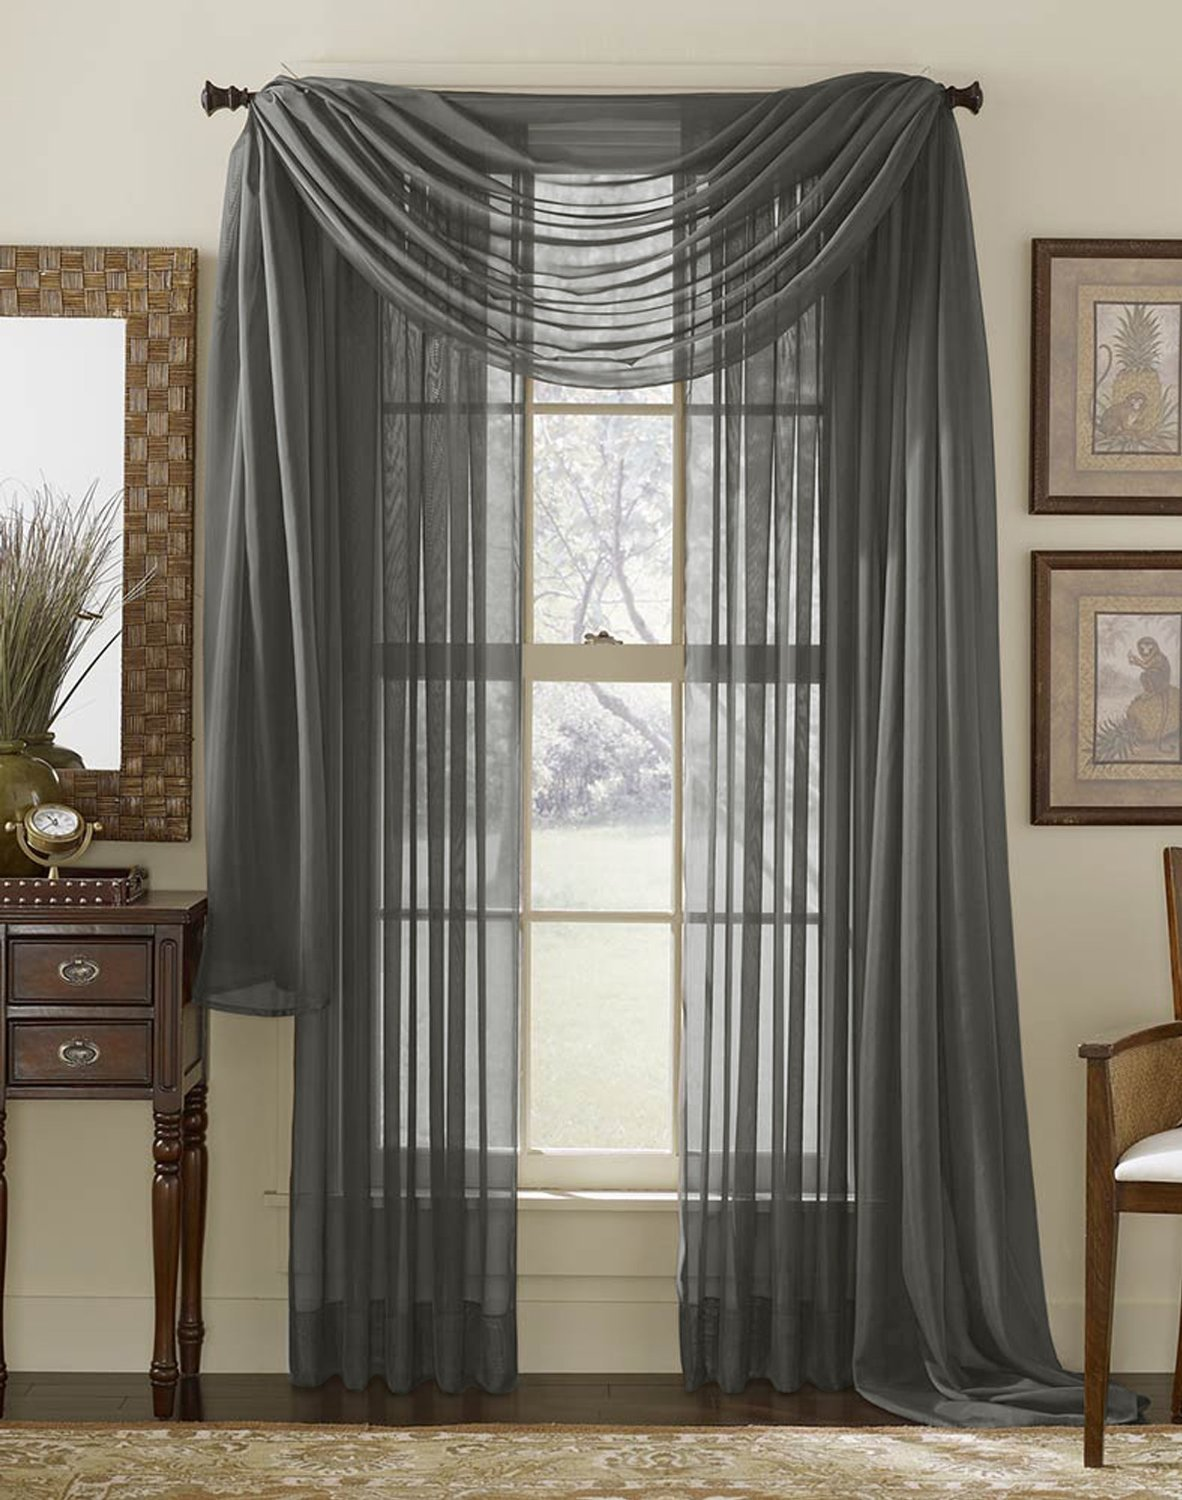 design home wearefound window patterned the valances hanging scarf valance